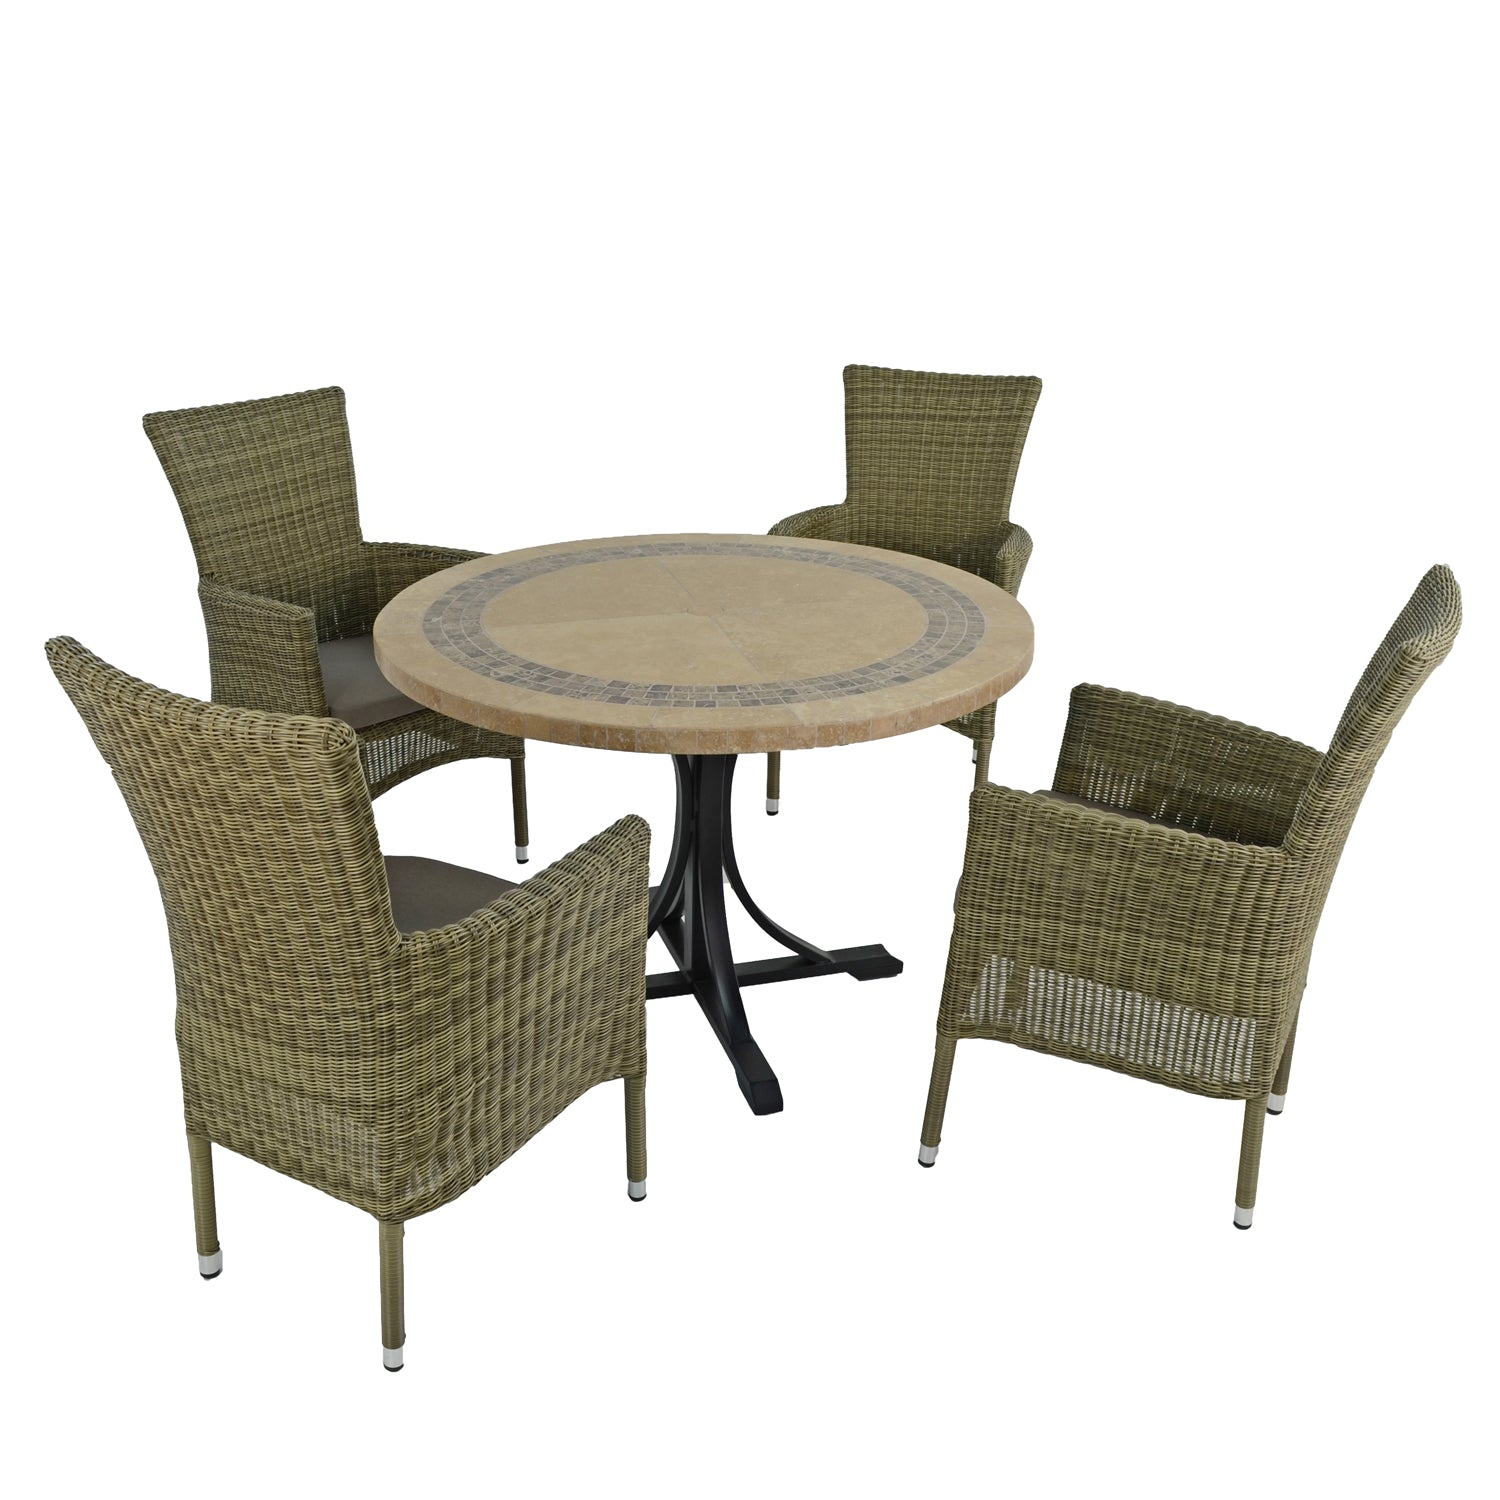 Byron Manor Vermont Garden Dining Table With 4 Dorchester Chairs Set - Ruby's Garden Boutique